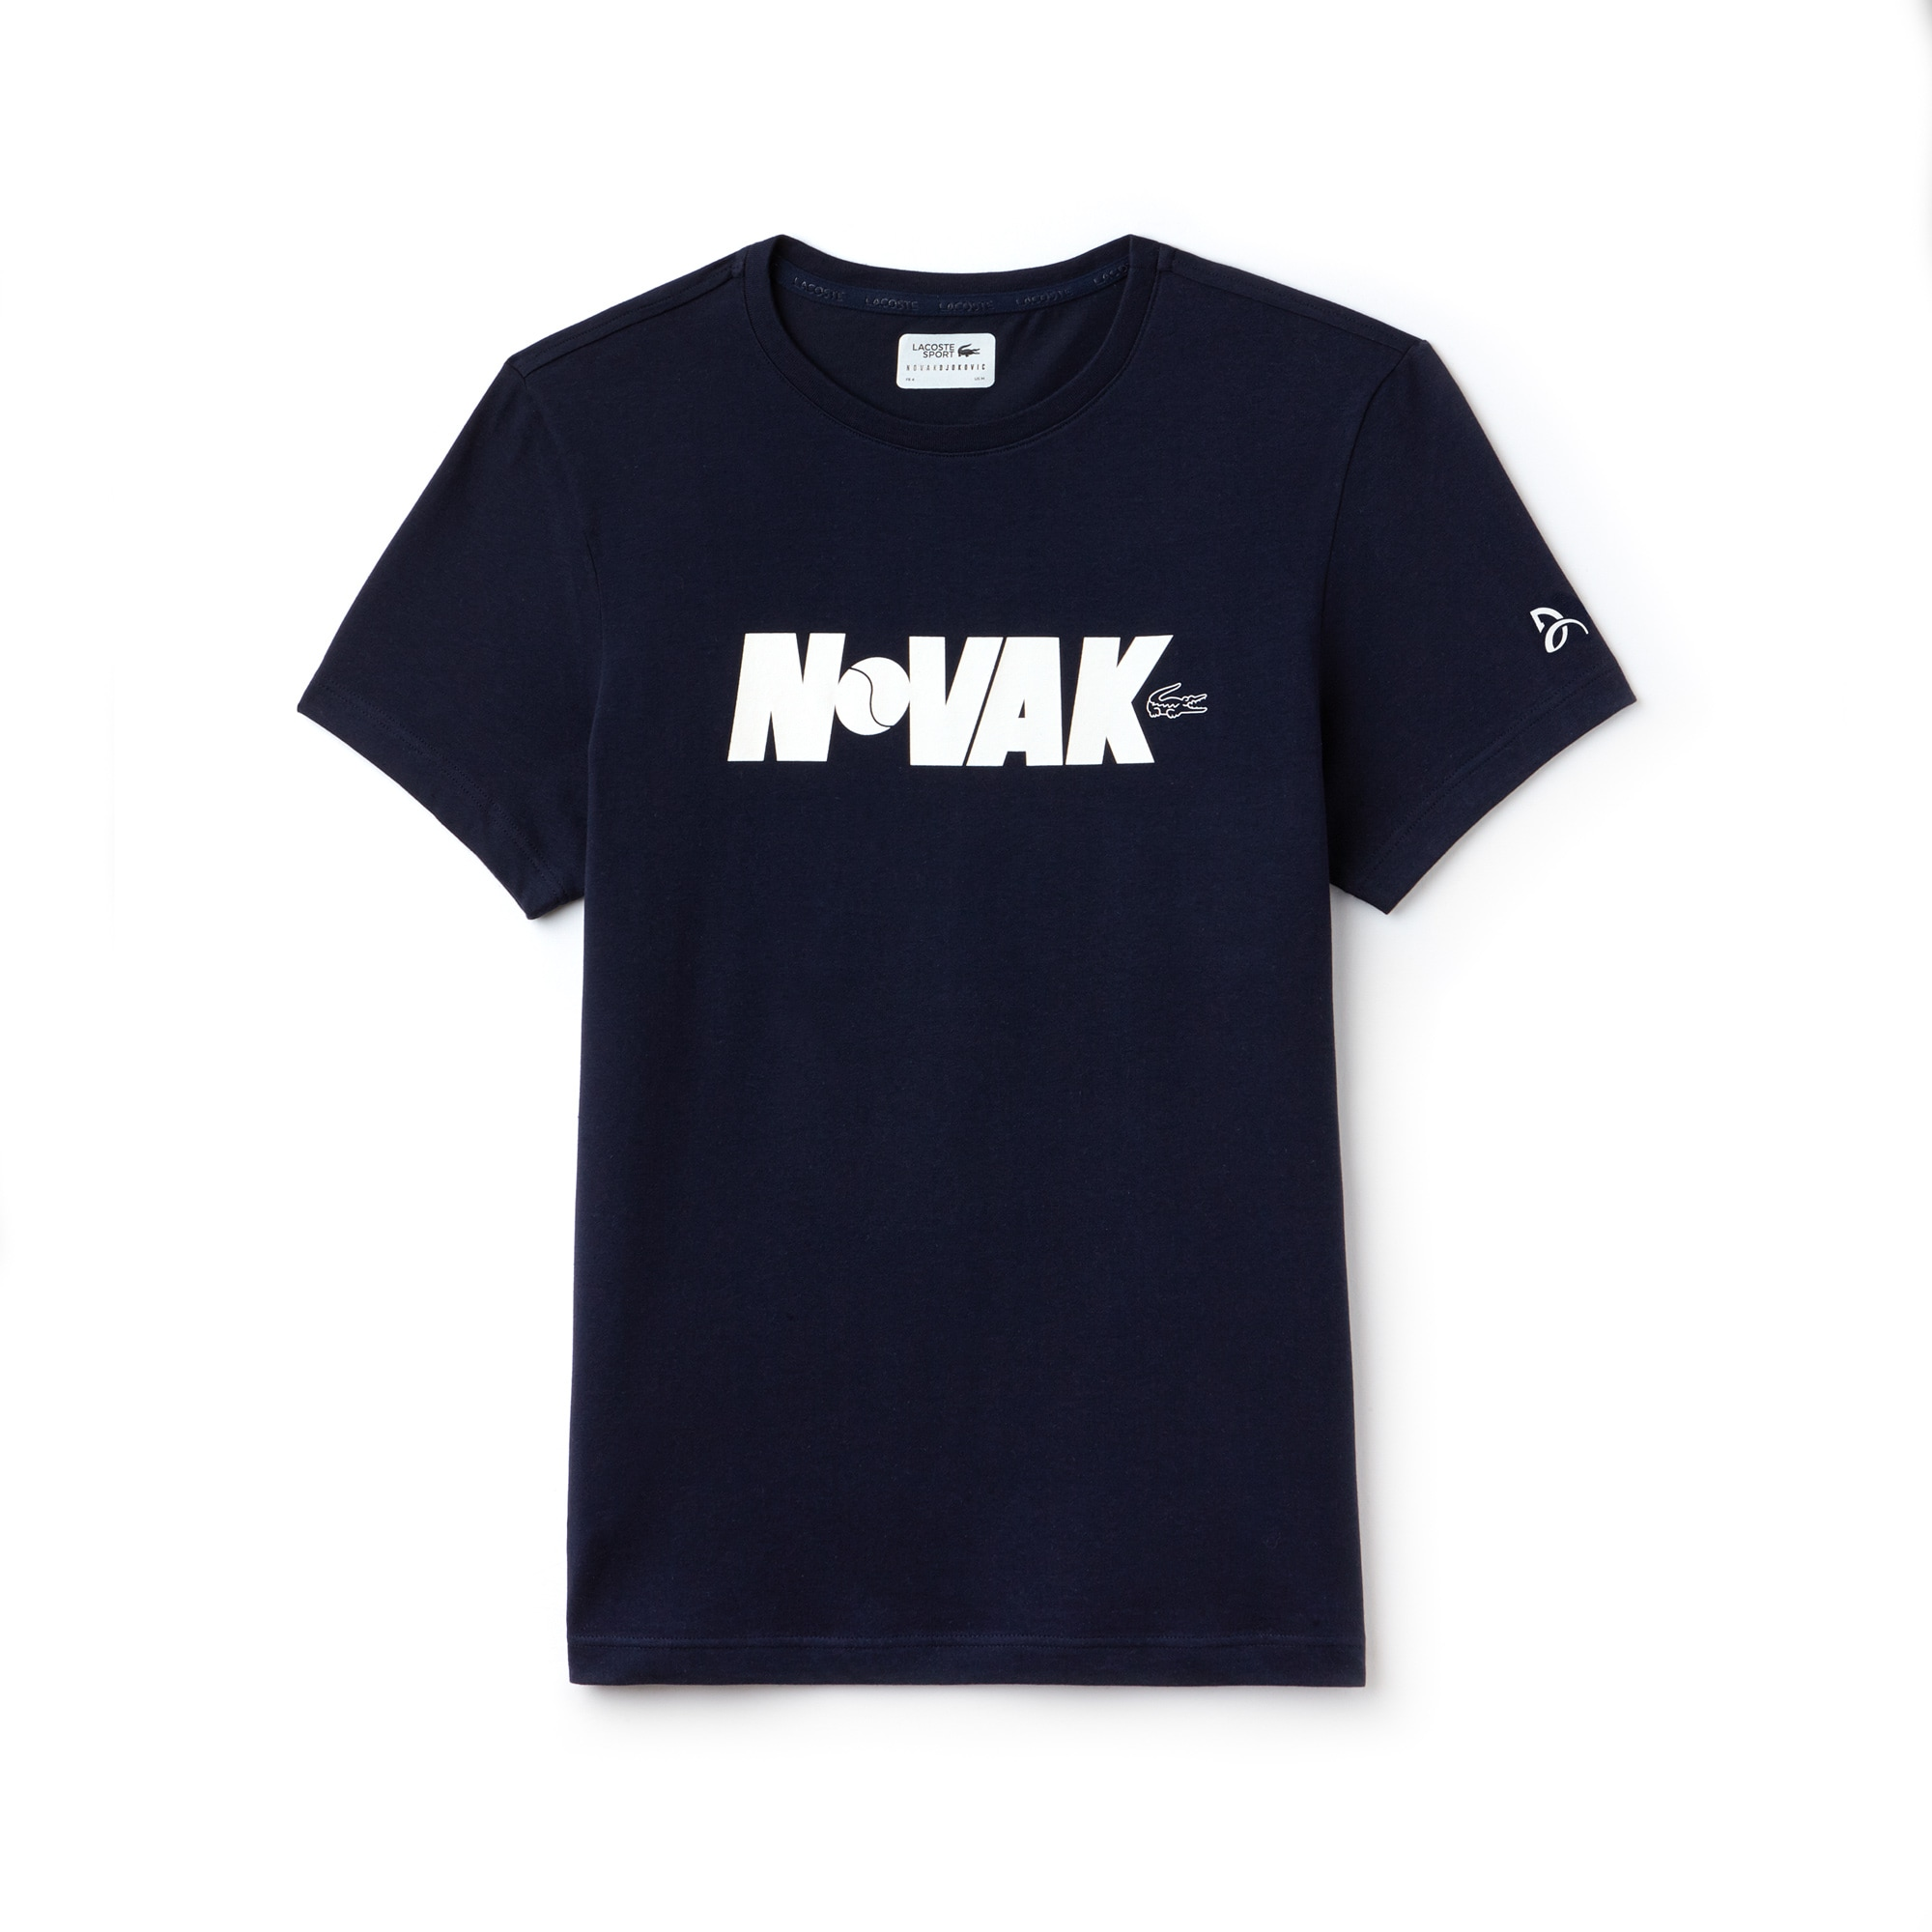 T-shirt col rond Lacoste SPORT COLLECTION NOVAK DJOKOVIC SUPPORT WITH STYLE en jersey technique